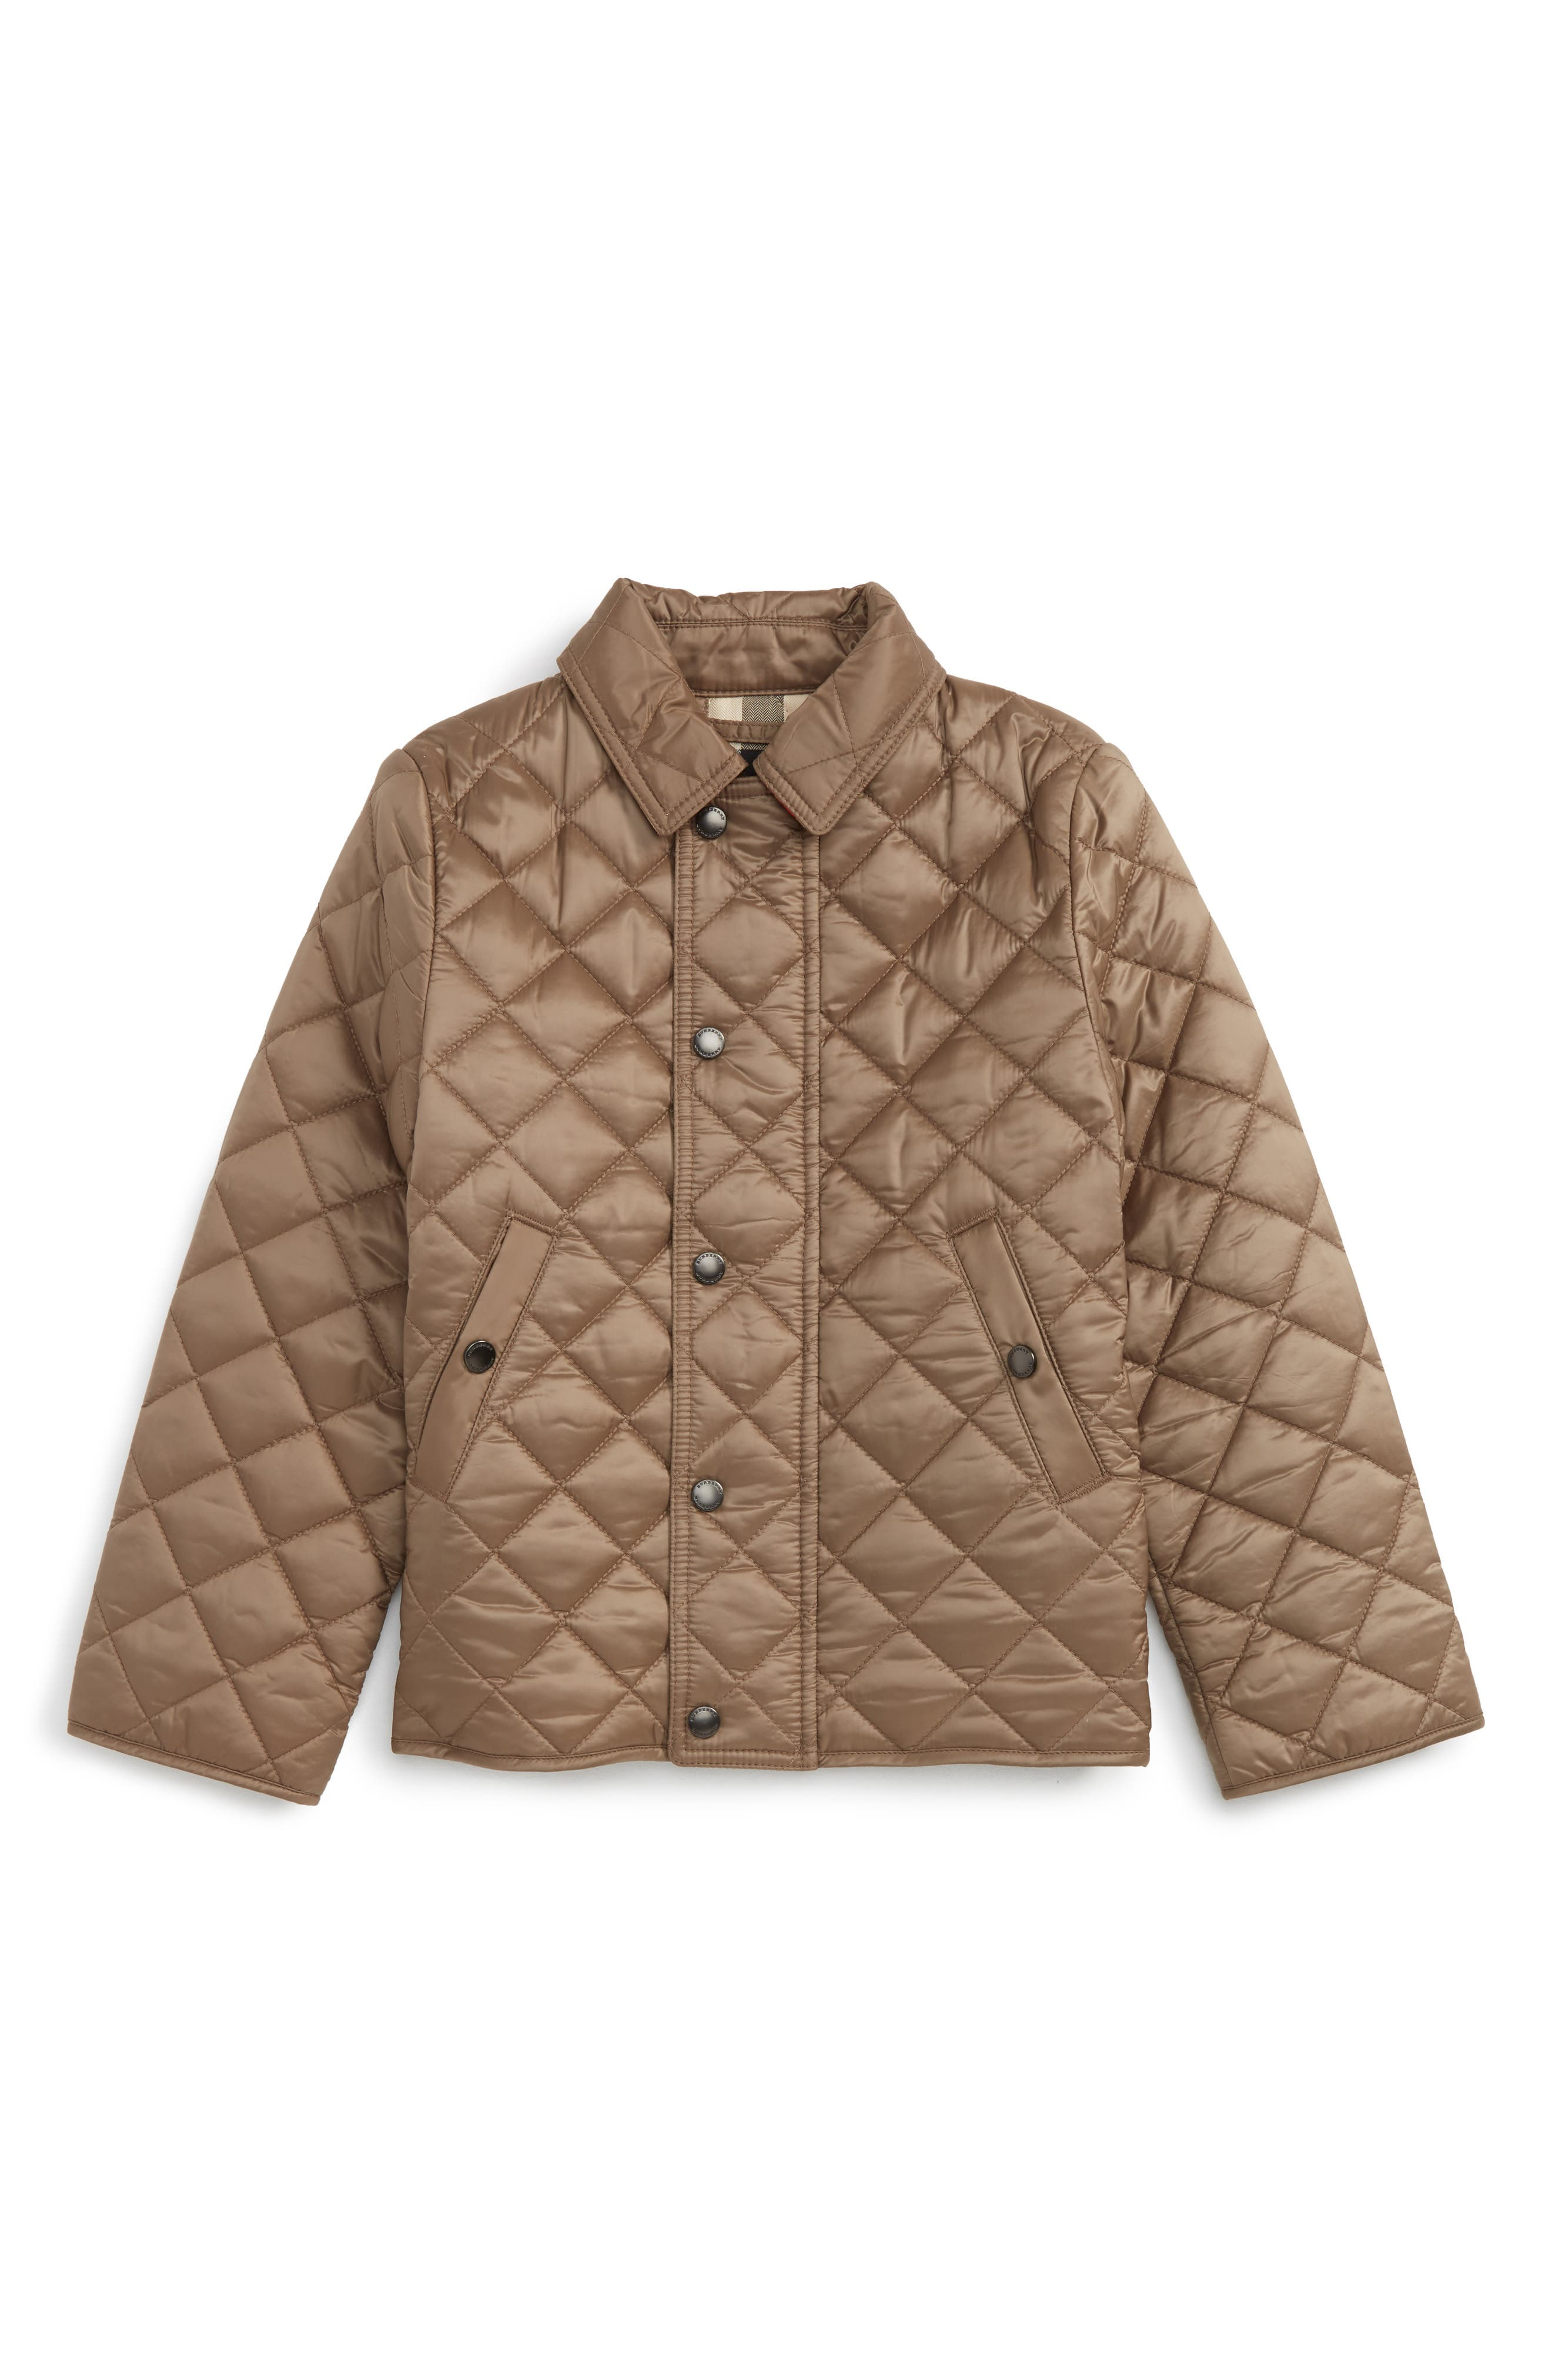 Alternate Image 1 Selected - Burberry Mini Luke Quilted Jacket (Toddler Boys)